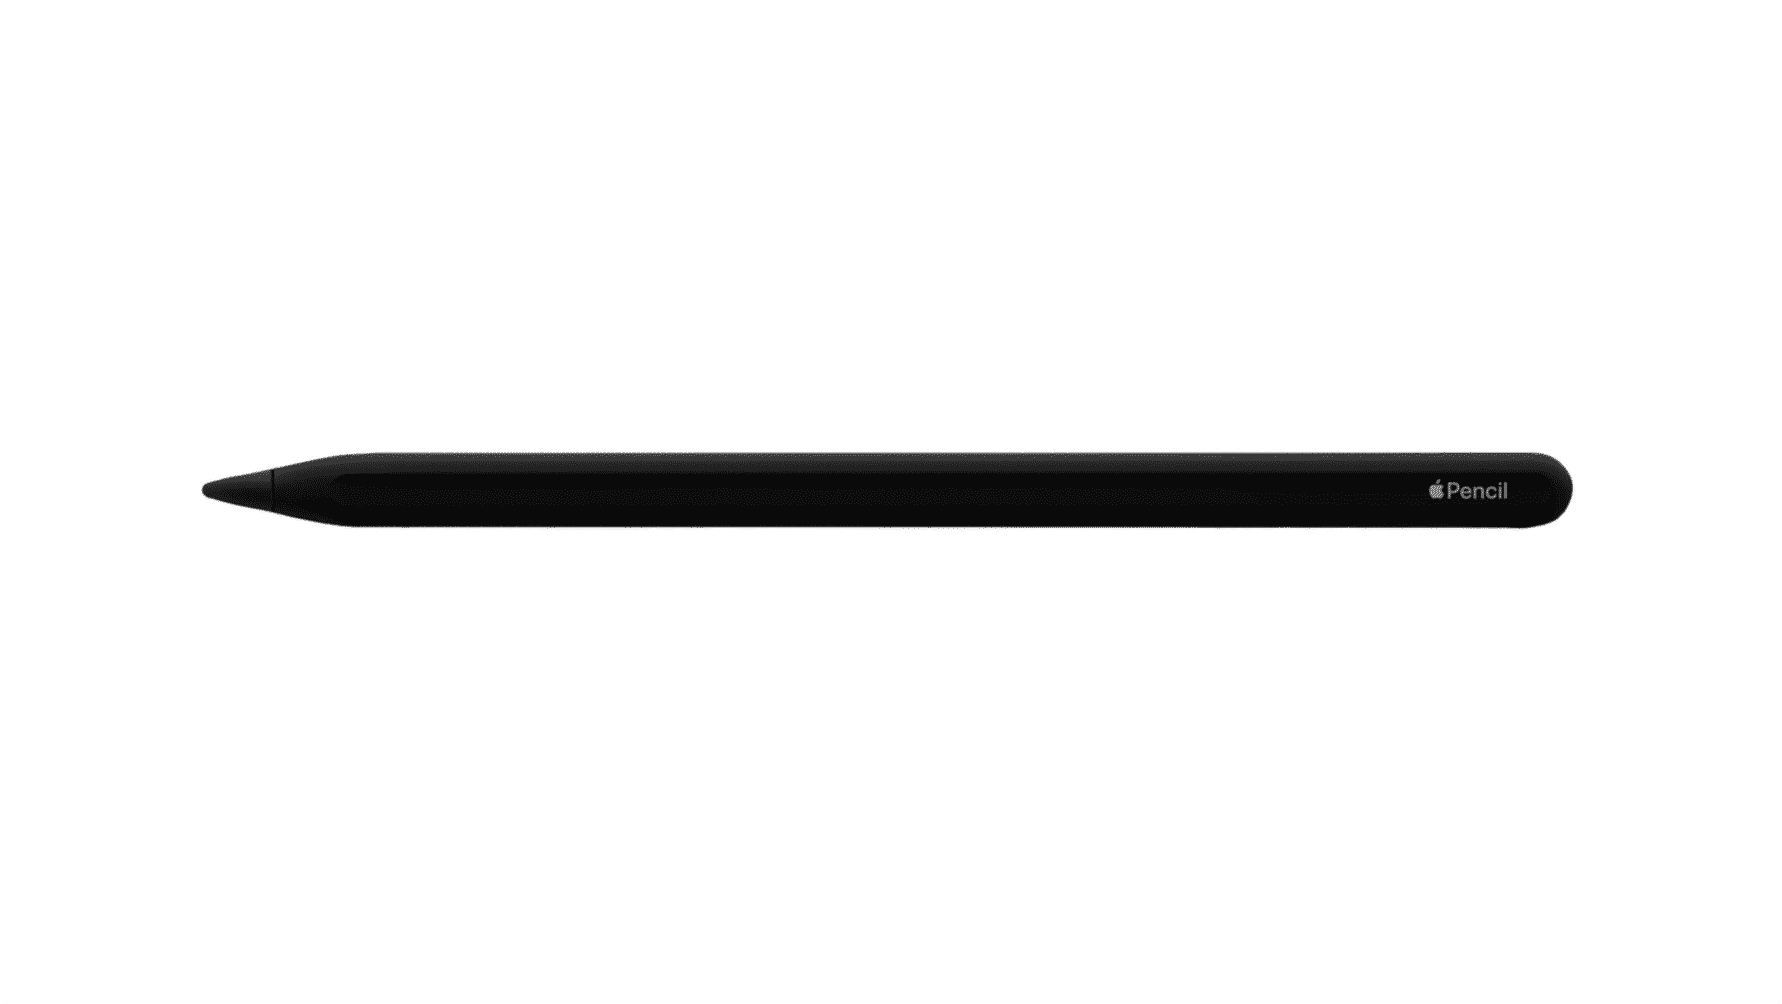 Black Apple Pencil